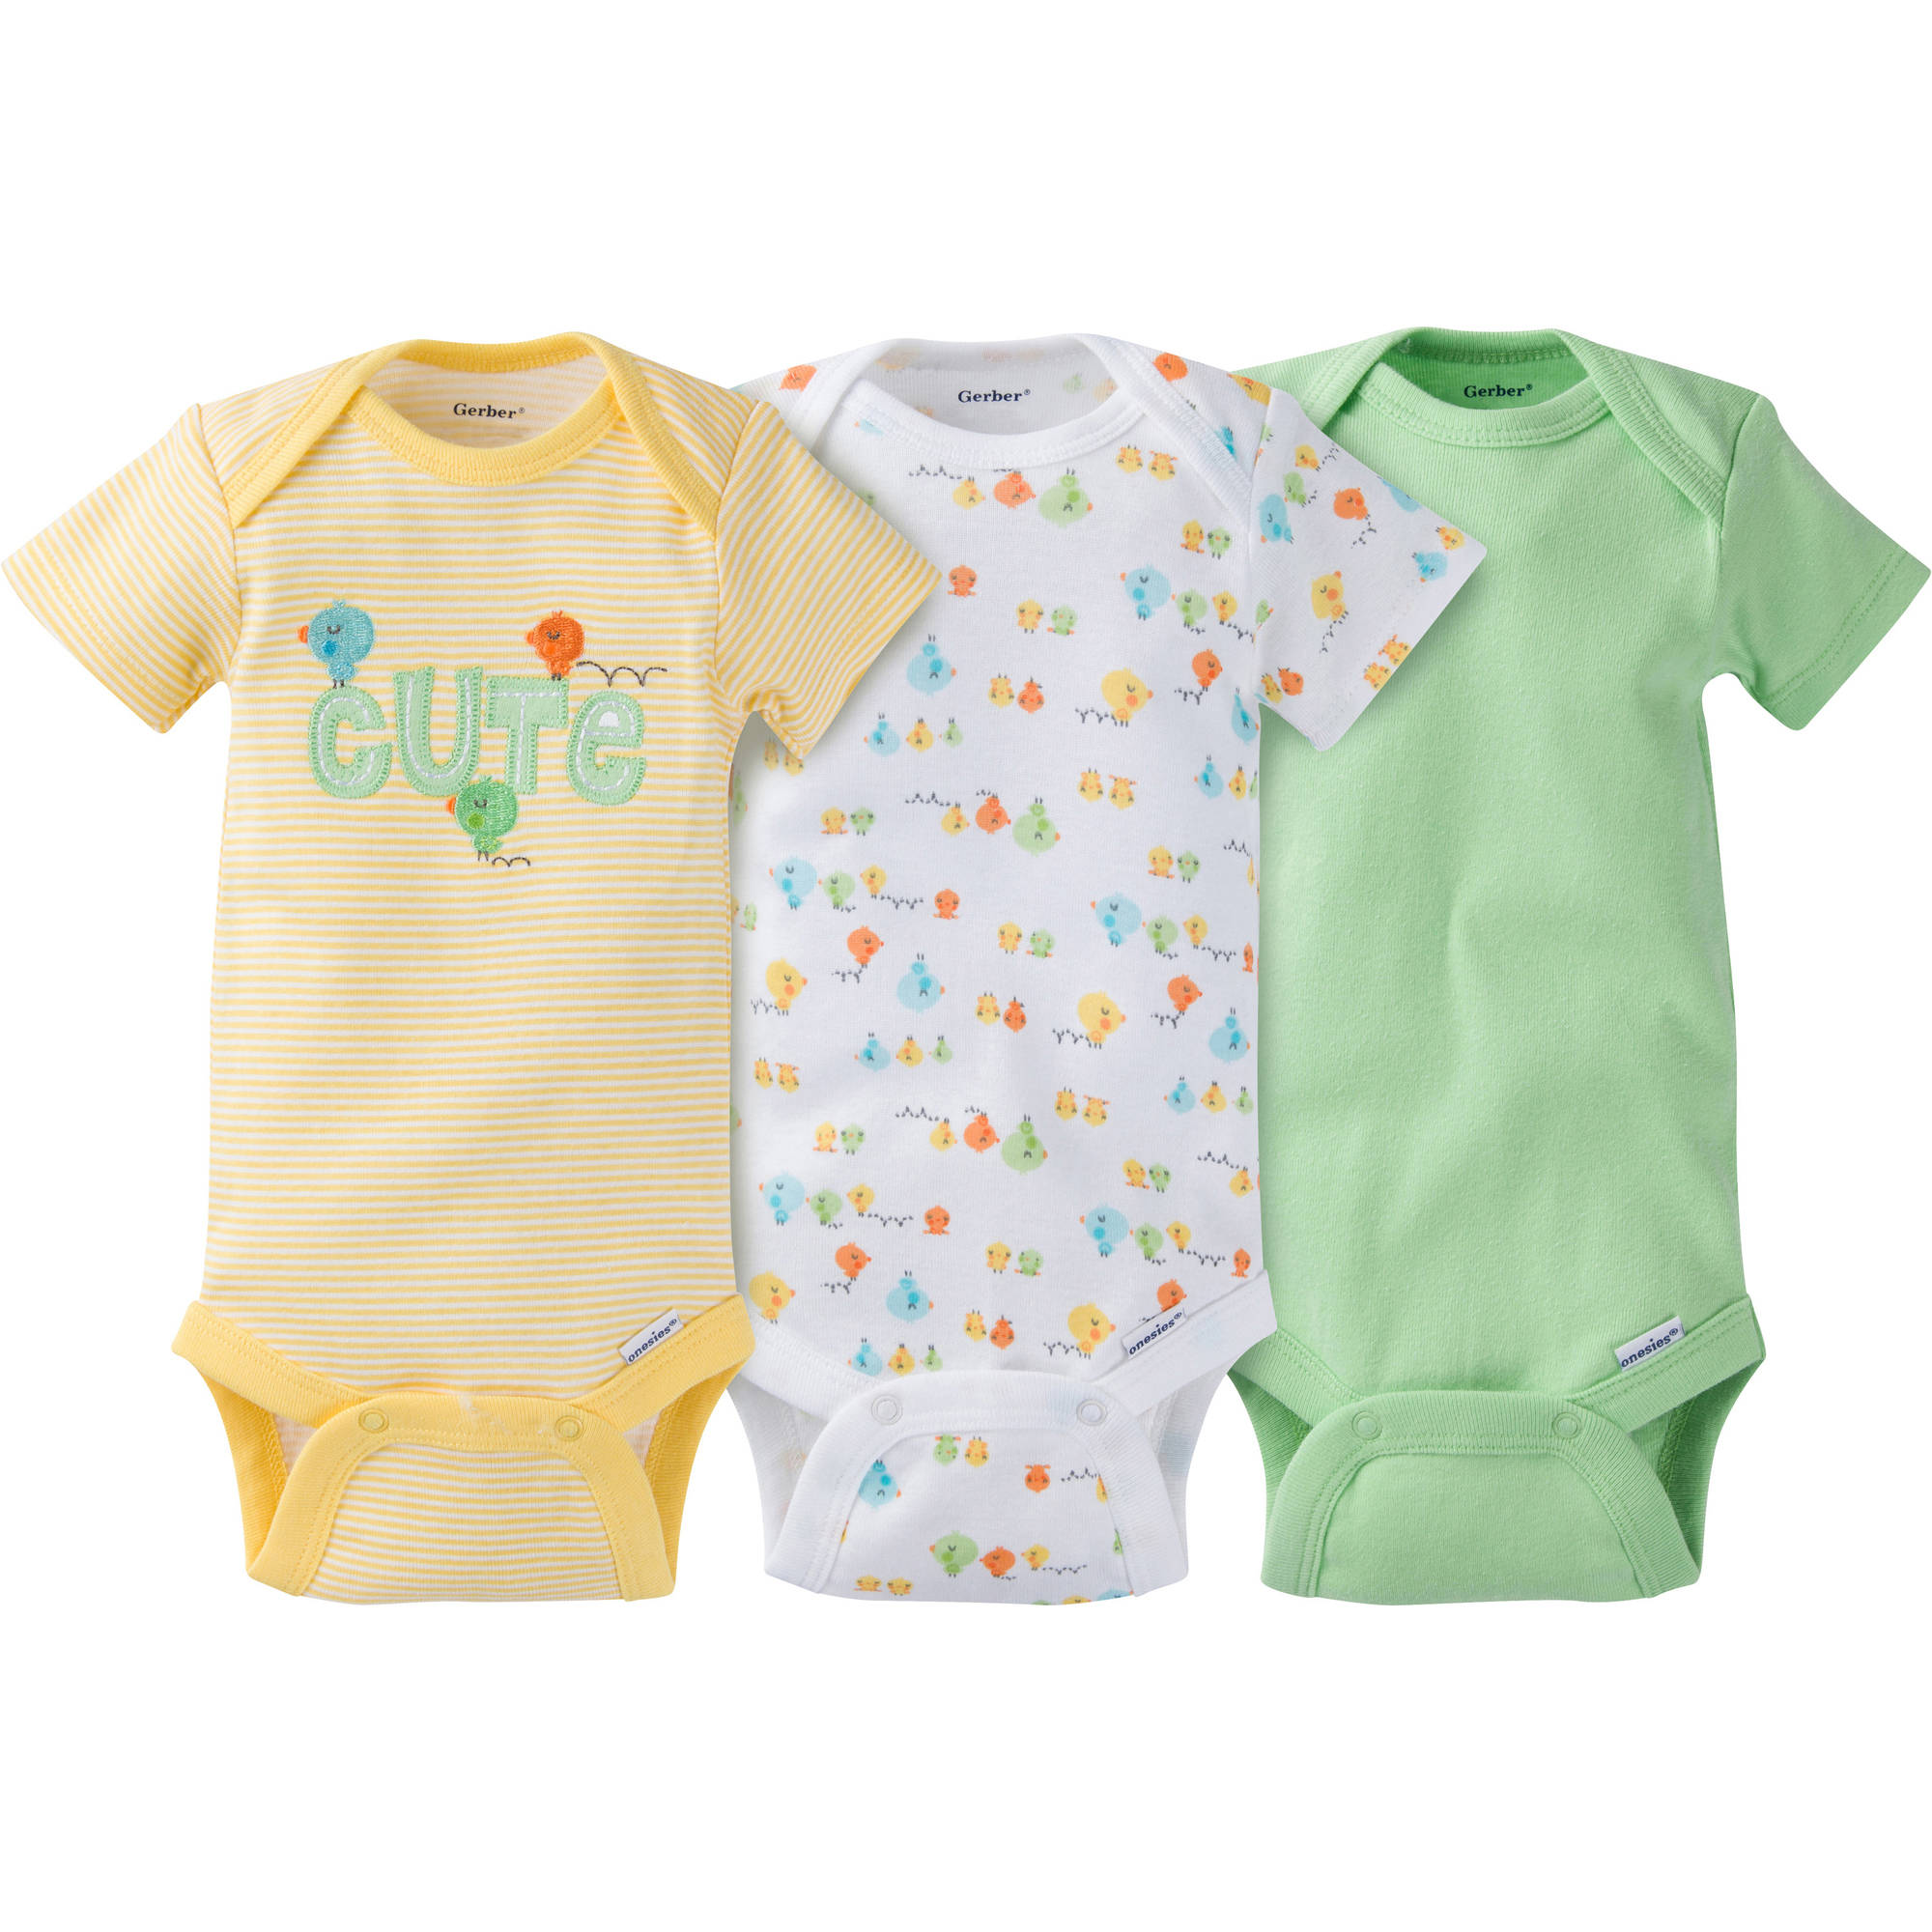 Gerber Newborn Baby Boy or Girl Unisex Onesies Bodysuits Assorted, 3-Pack